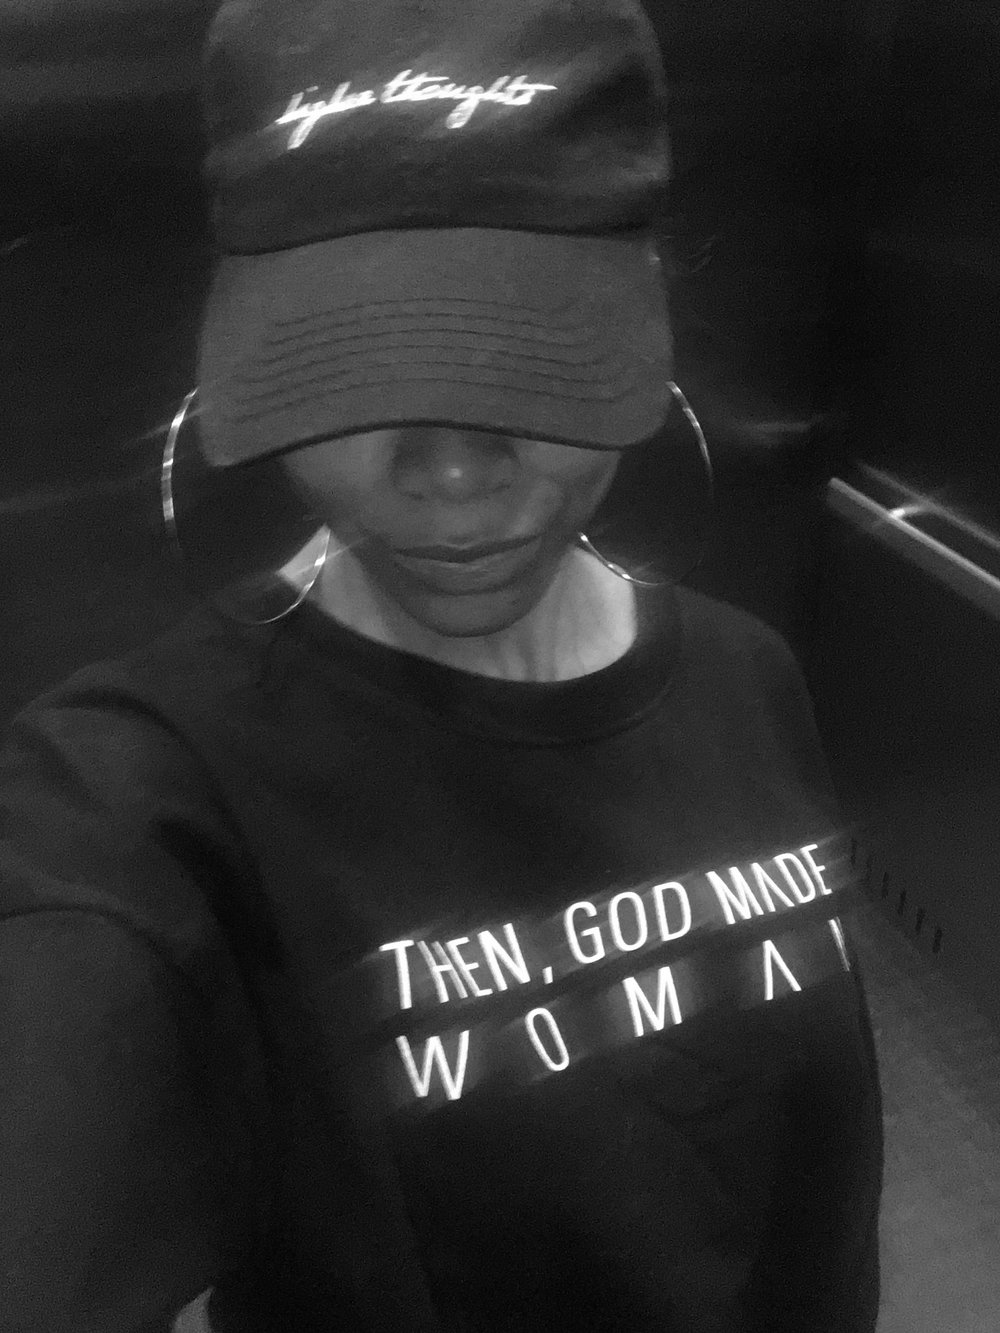 Then, God Made Woman - Higher Thoughts